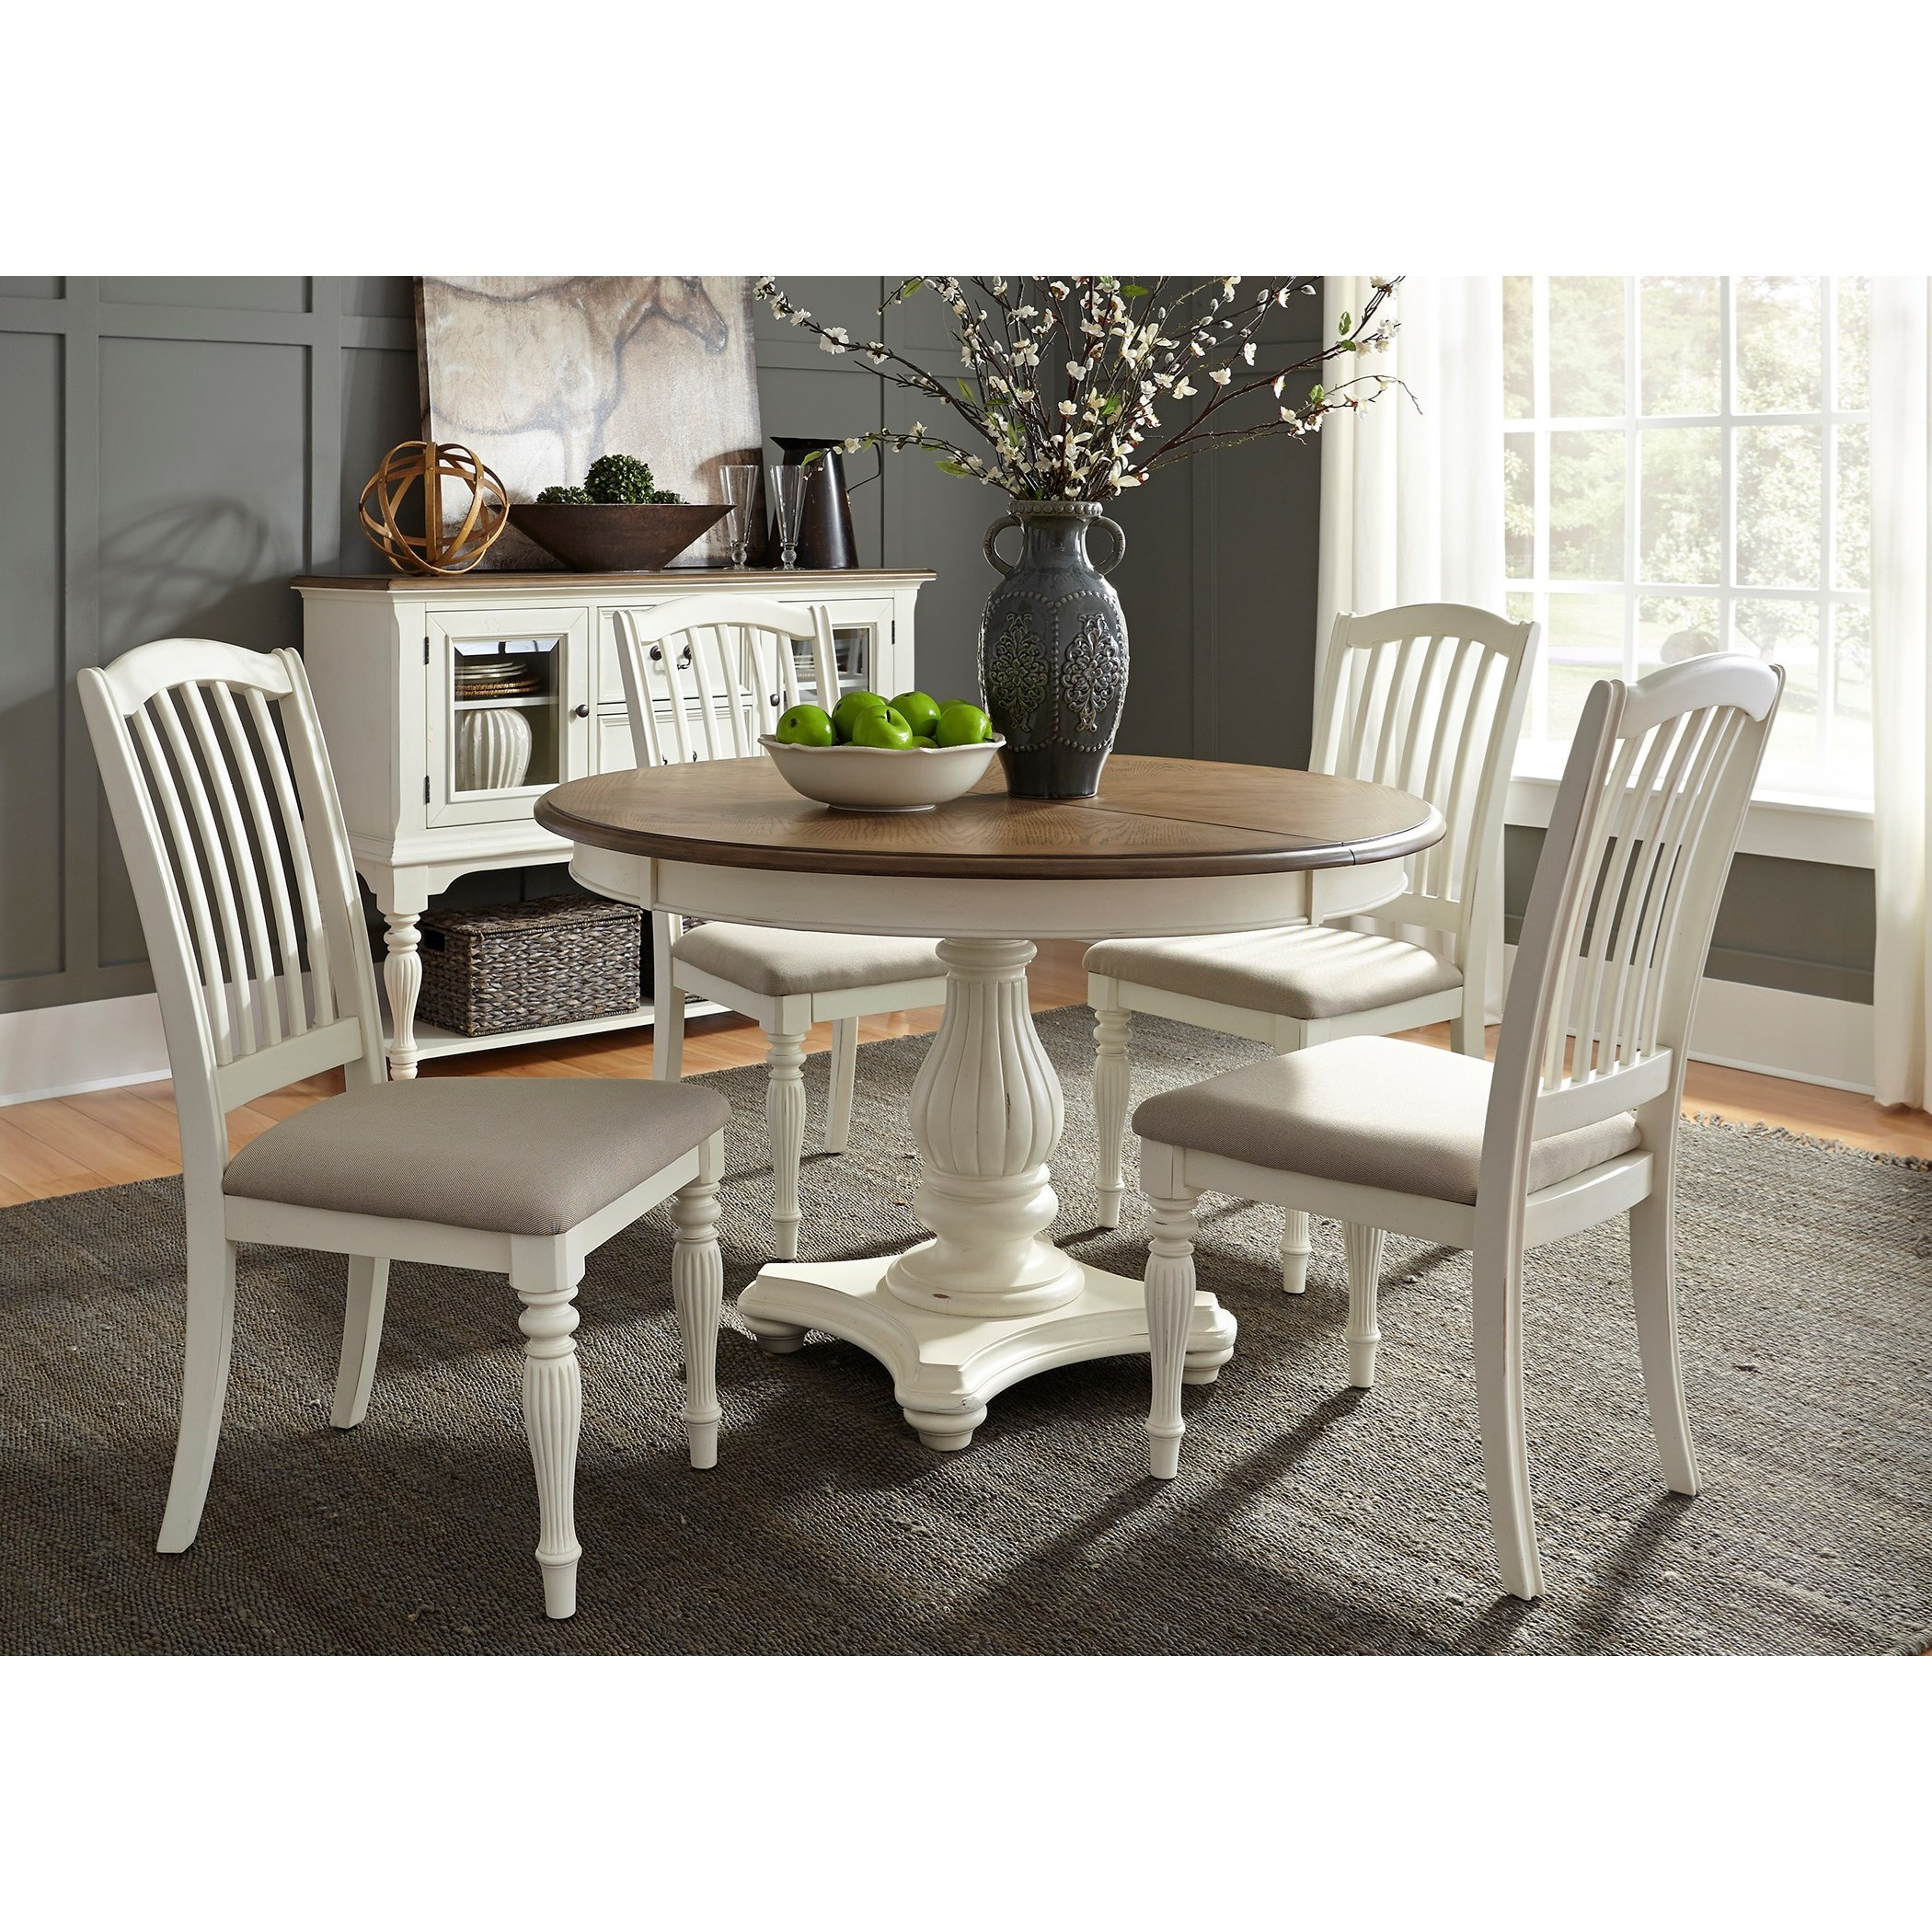 Dining Sets Tuscany Solid Wood Large Dining Set Table 6 Chairs: Vendor 5349 Cumberland Creek Dining Pedestal Table With